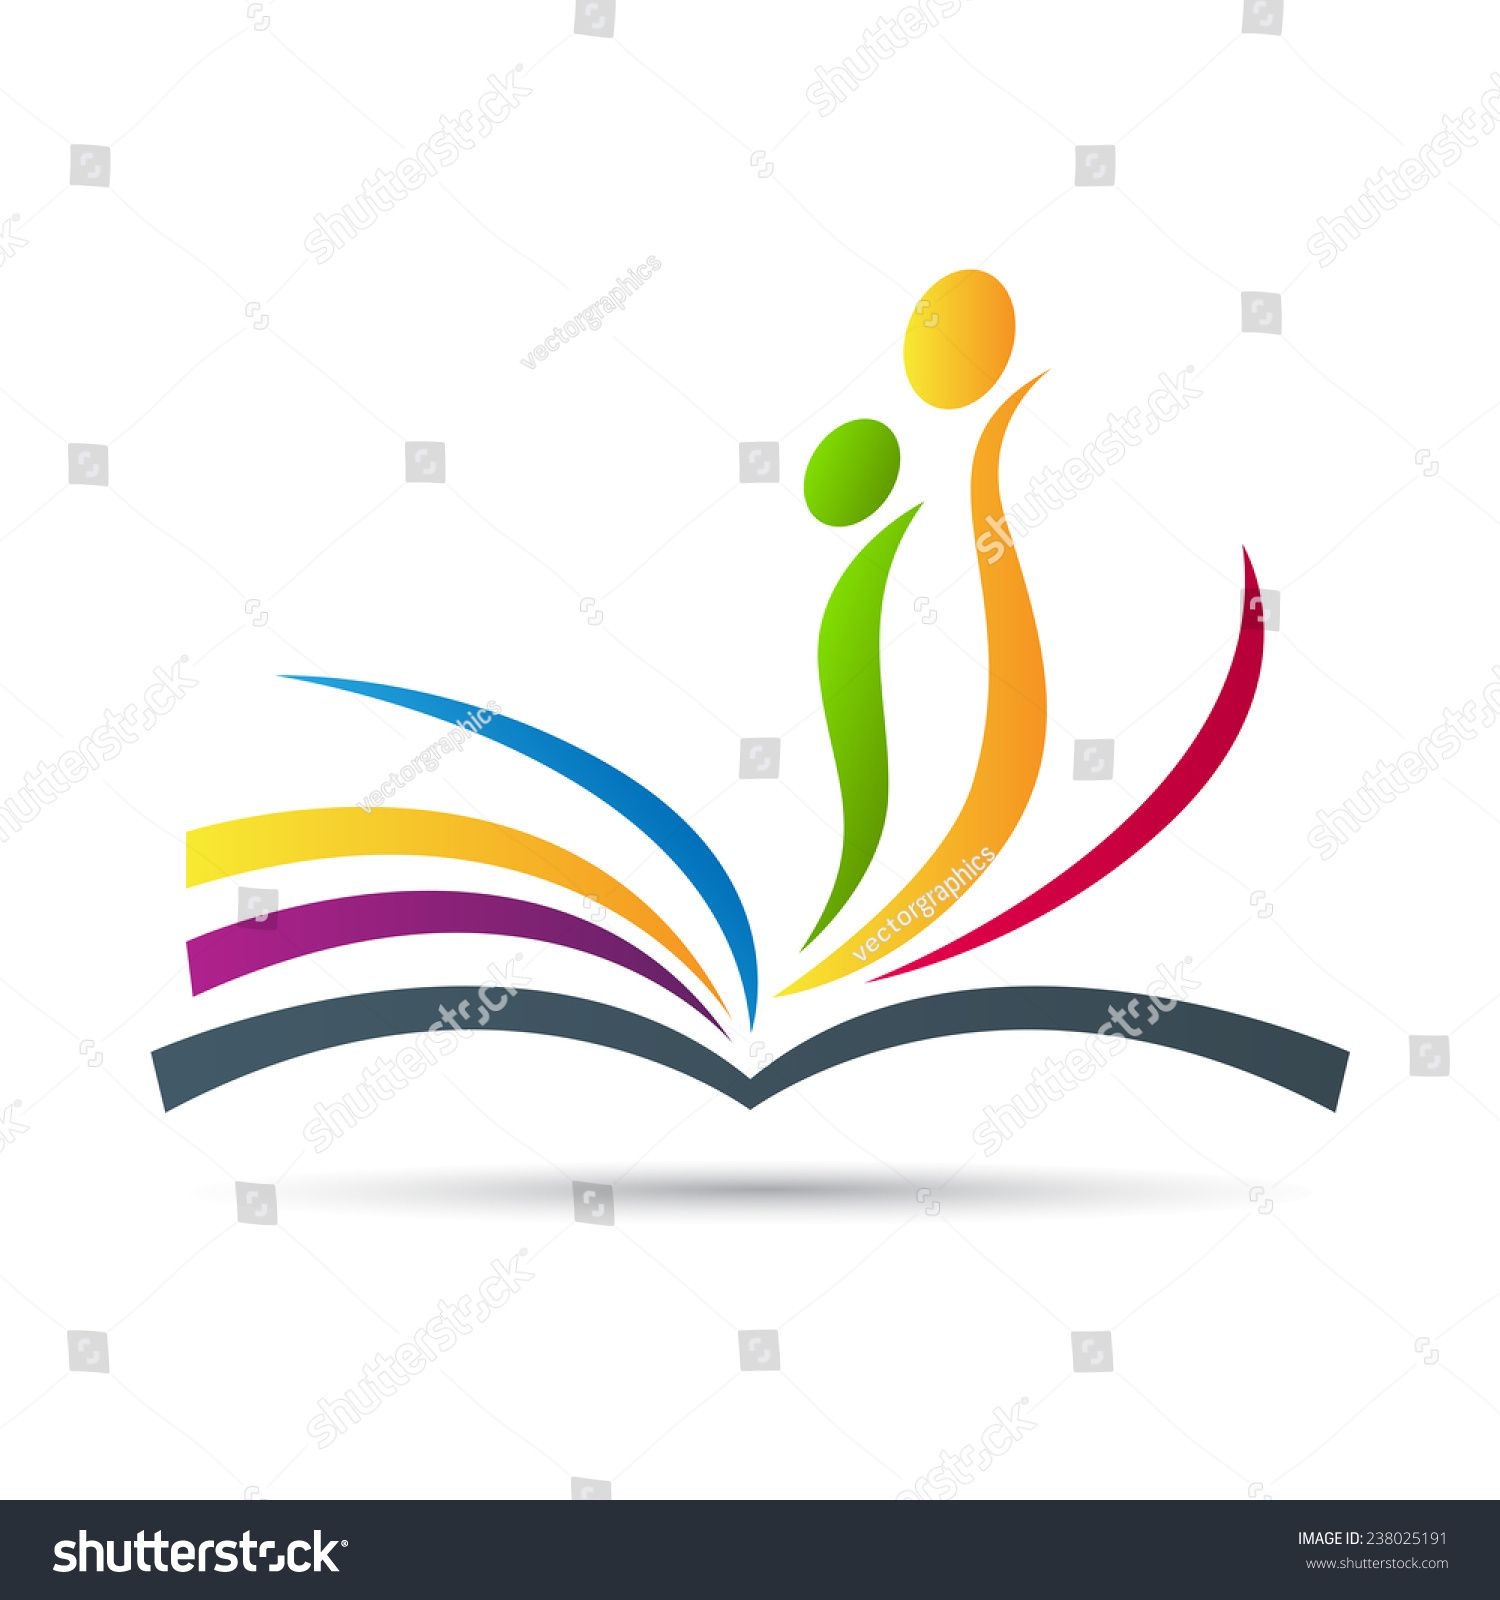 Abstract Book Vector Design Represents Publishing Work Education